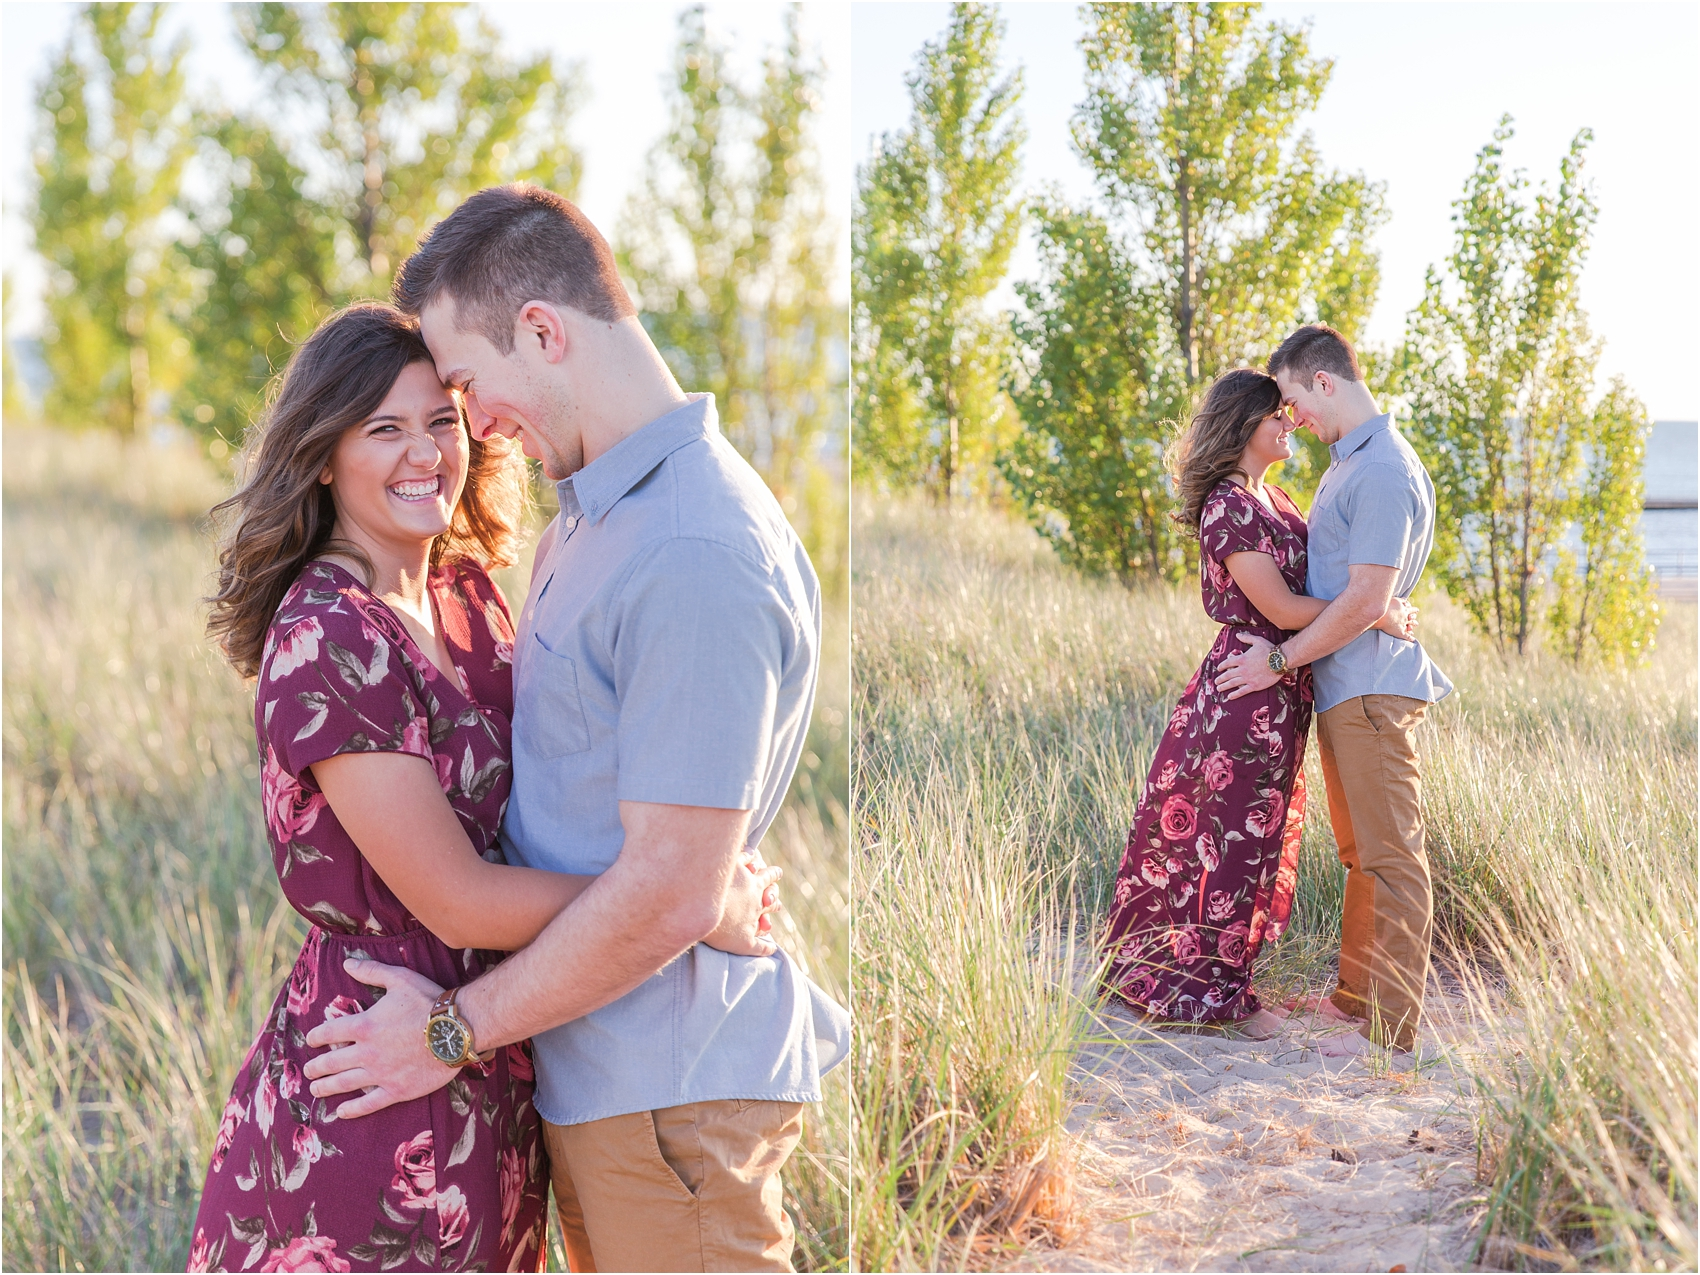 candid-end-of-summer-sunset-engagement-photos-at-silver-beach-in-st-joseph-mi-by-courtney-carolyn-photography_0018.jpg